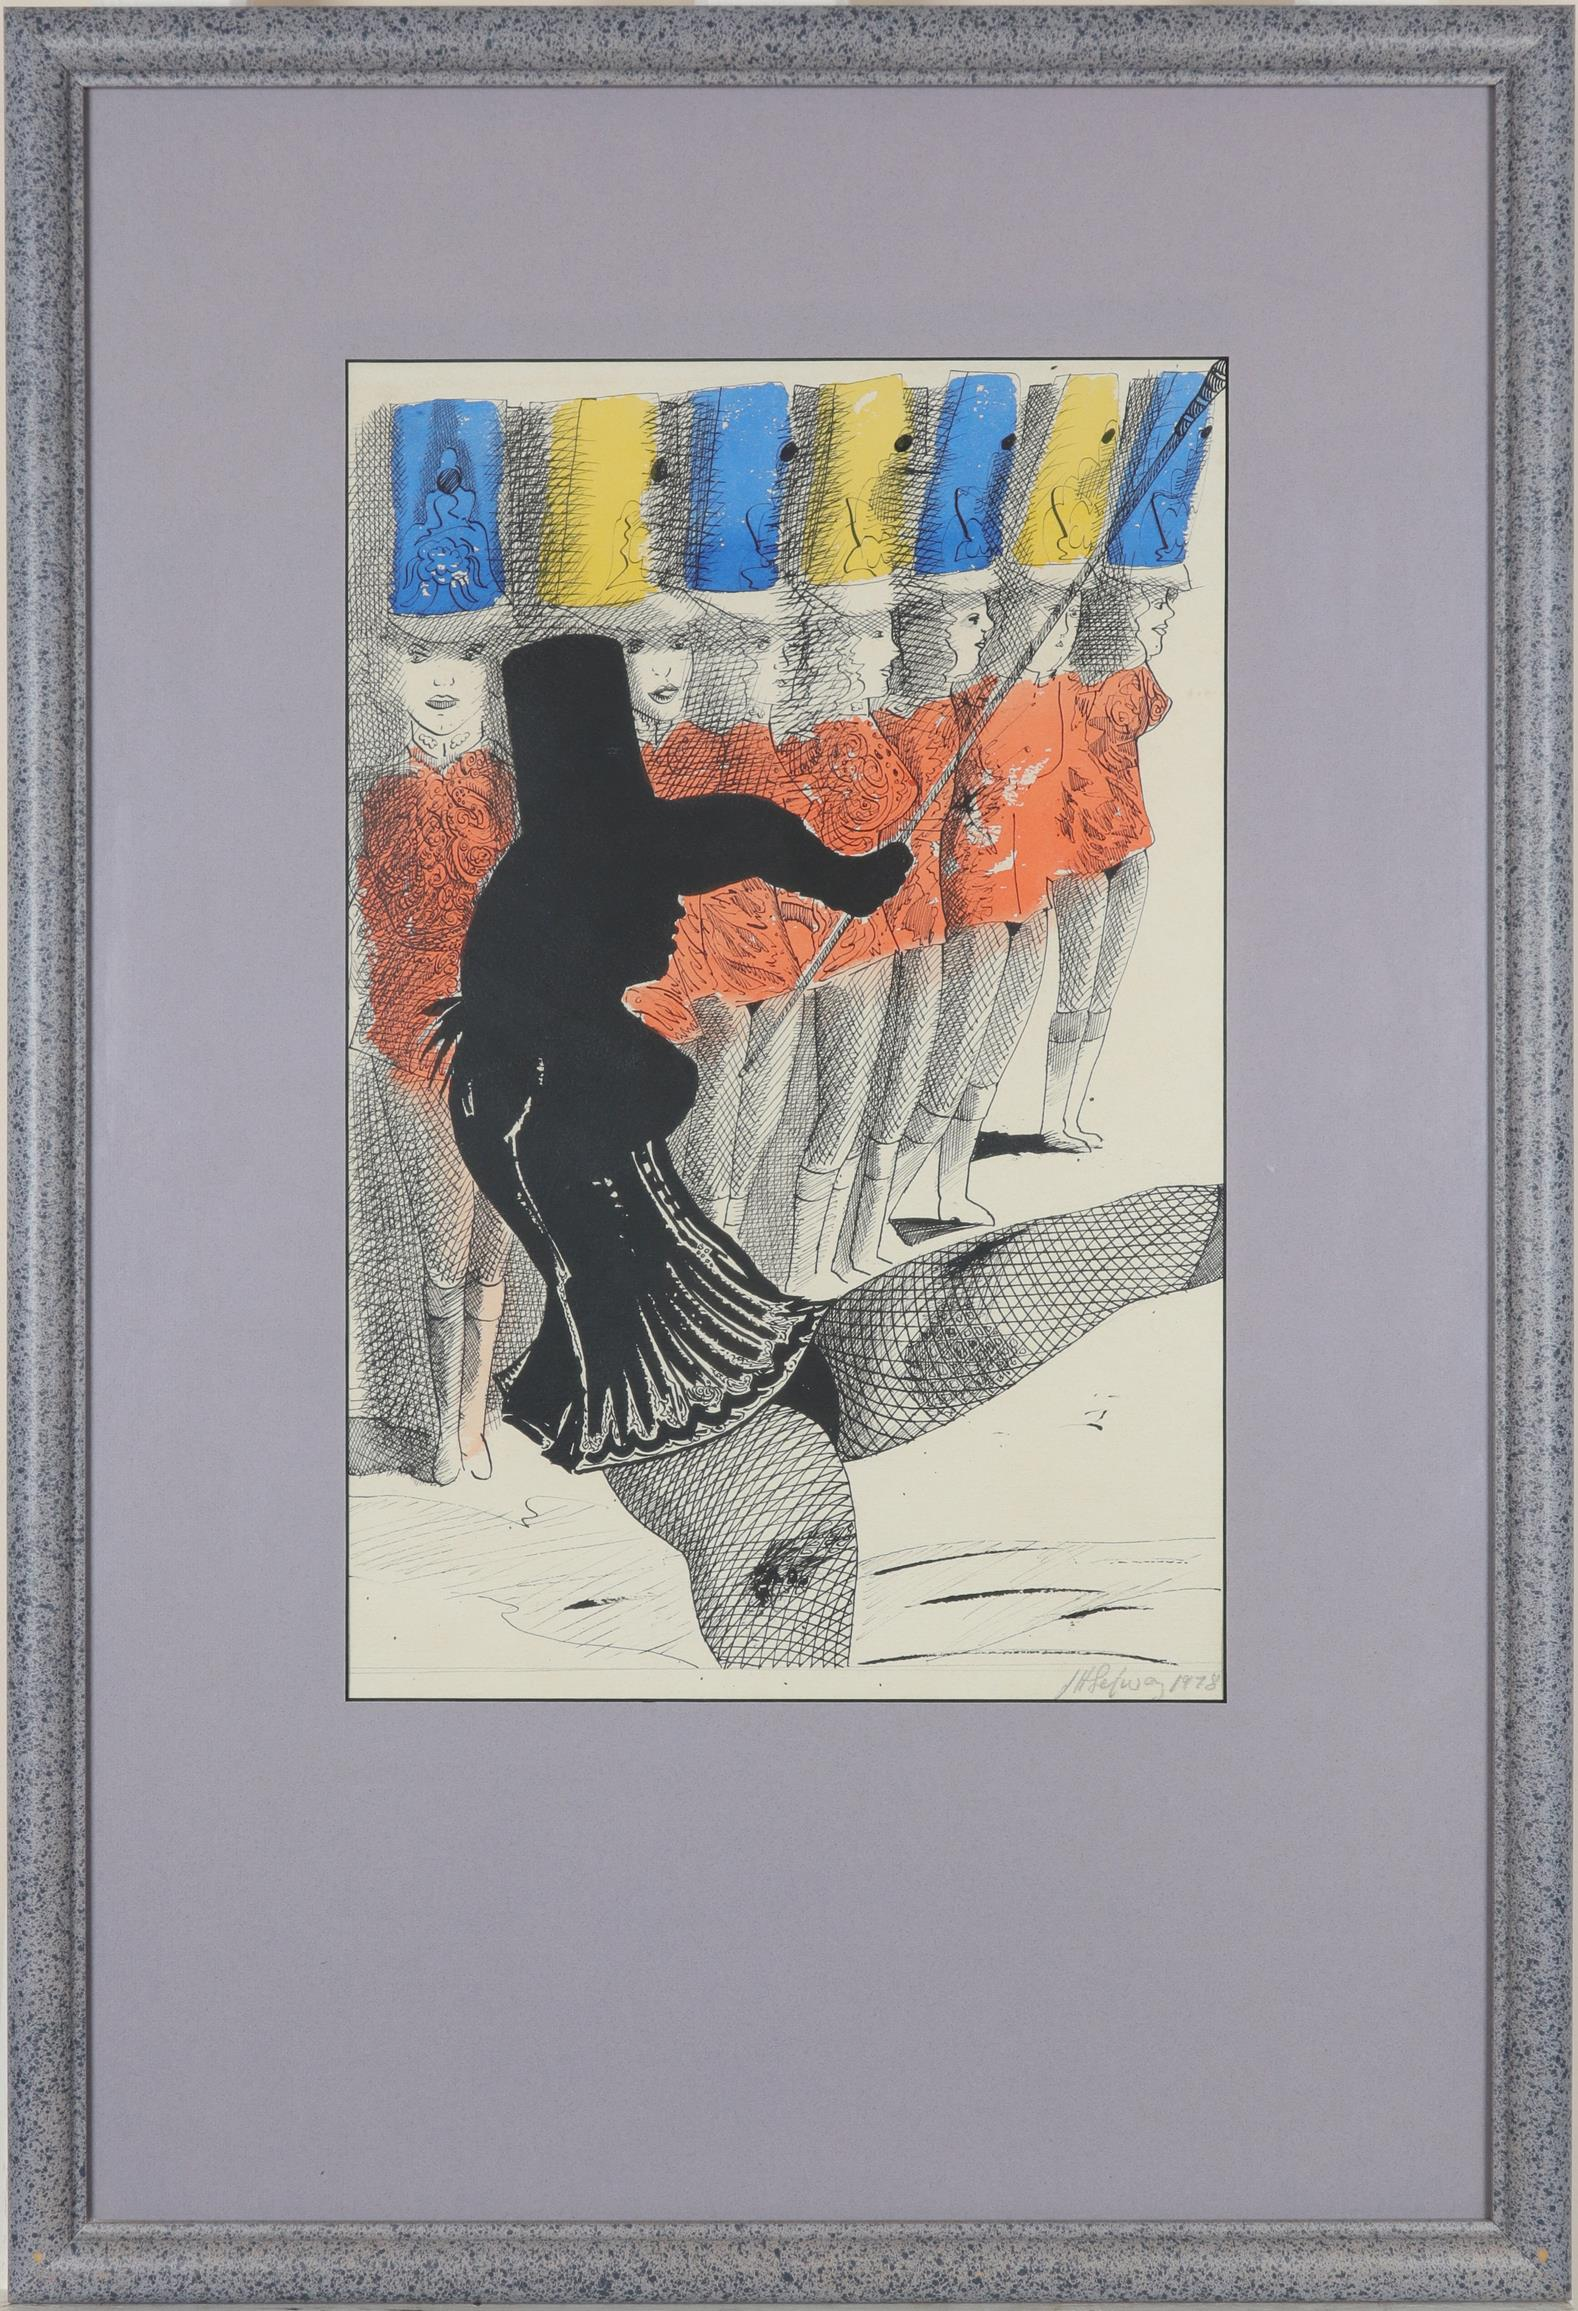 ‡John Selway (Welsh 1938-2017) Carnival Signed and dated J H Selway 1978 (lower right) - Image 2 of 3